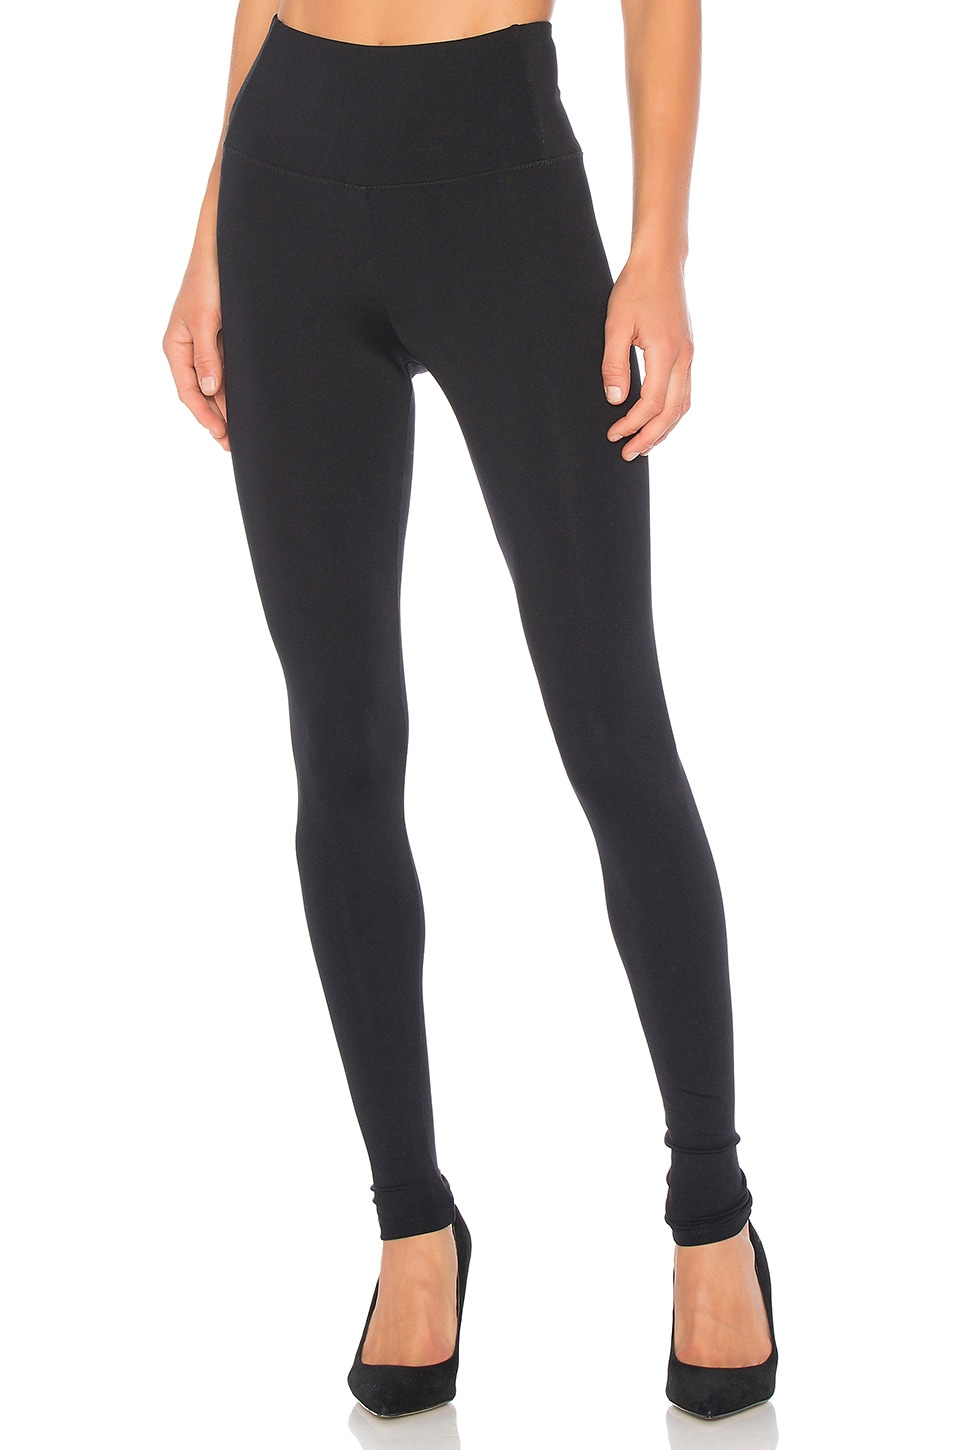 David Lerner Elliott High Waisted Legging in Classic Black